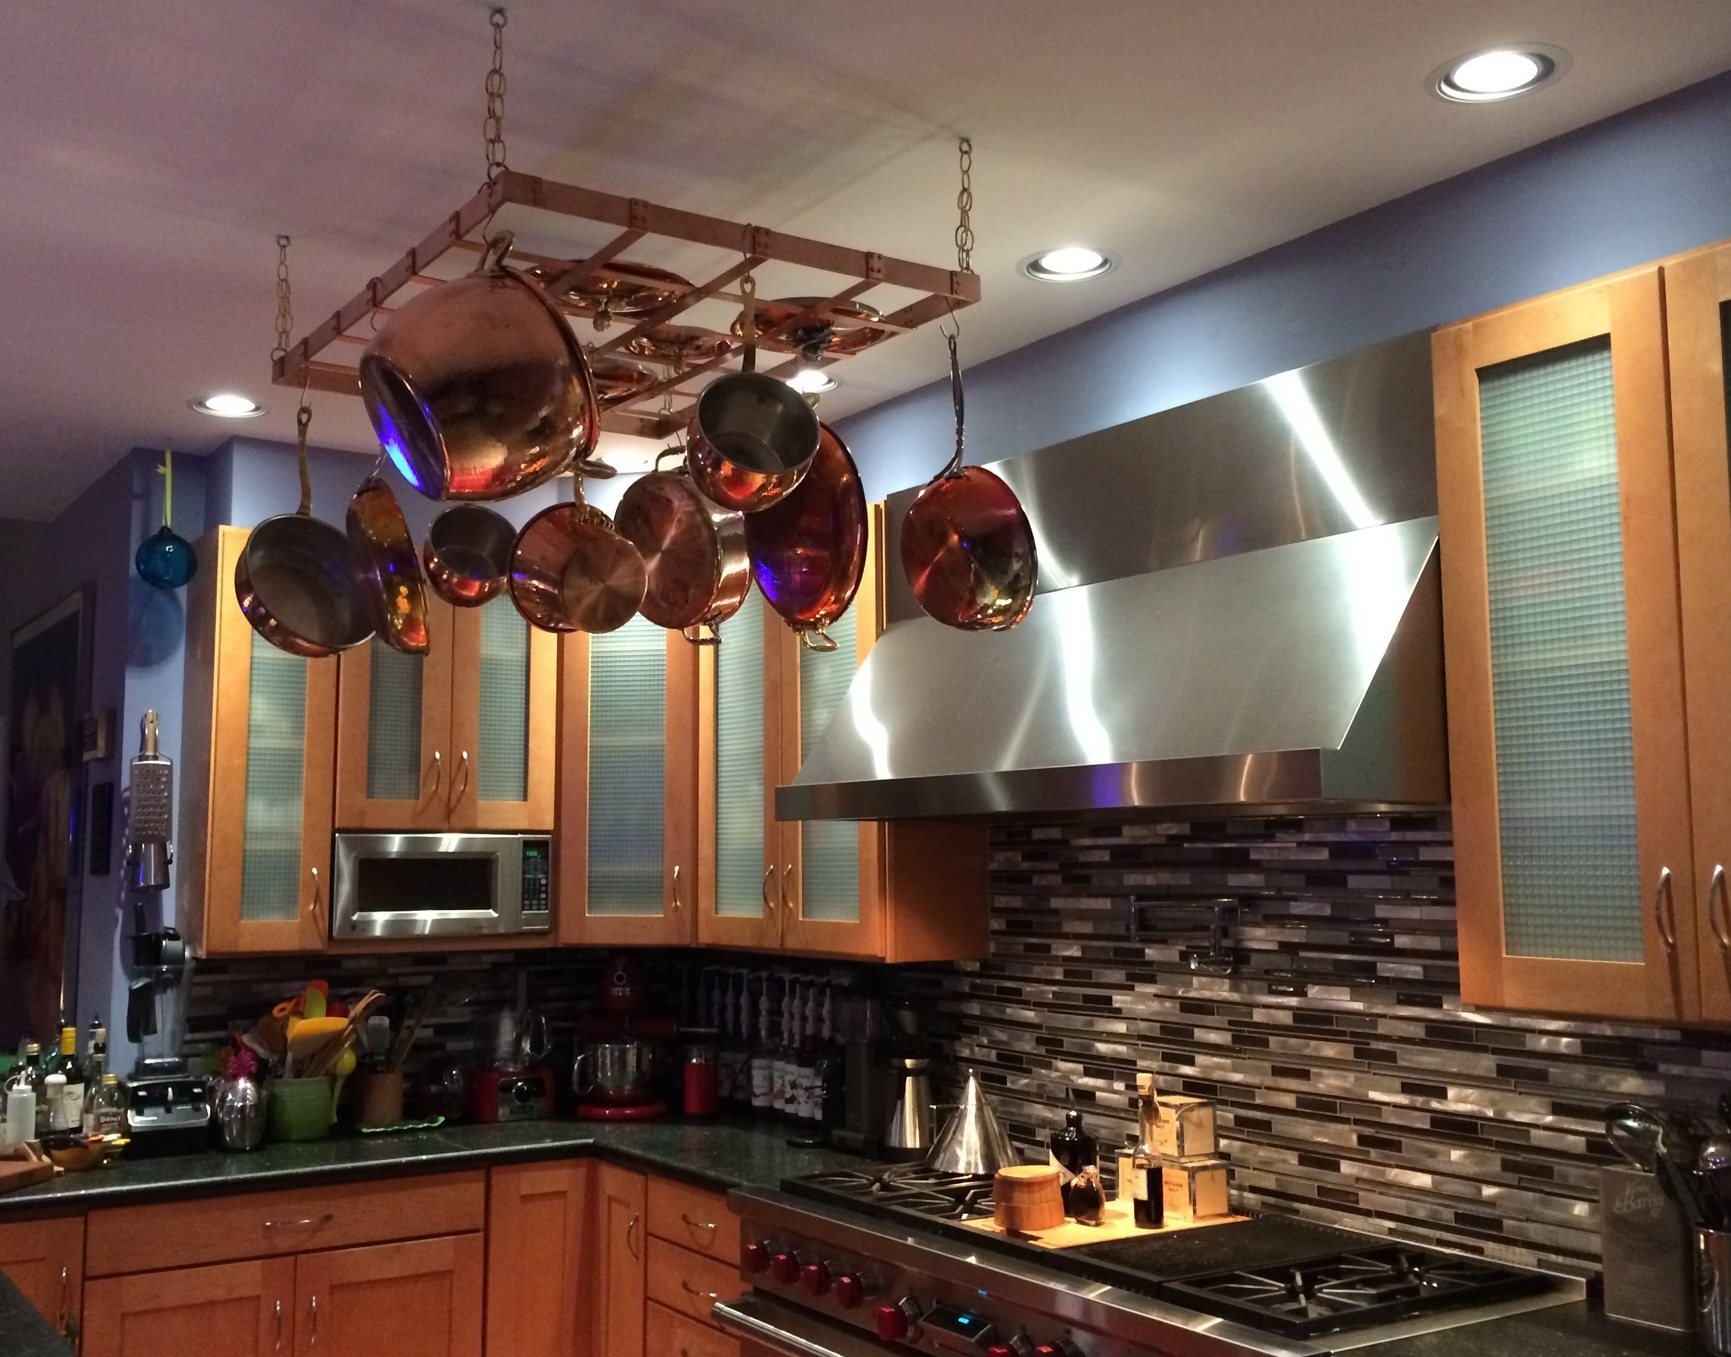 Pro Hanging Pot Racks Handcrafted In Copper By The Metal